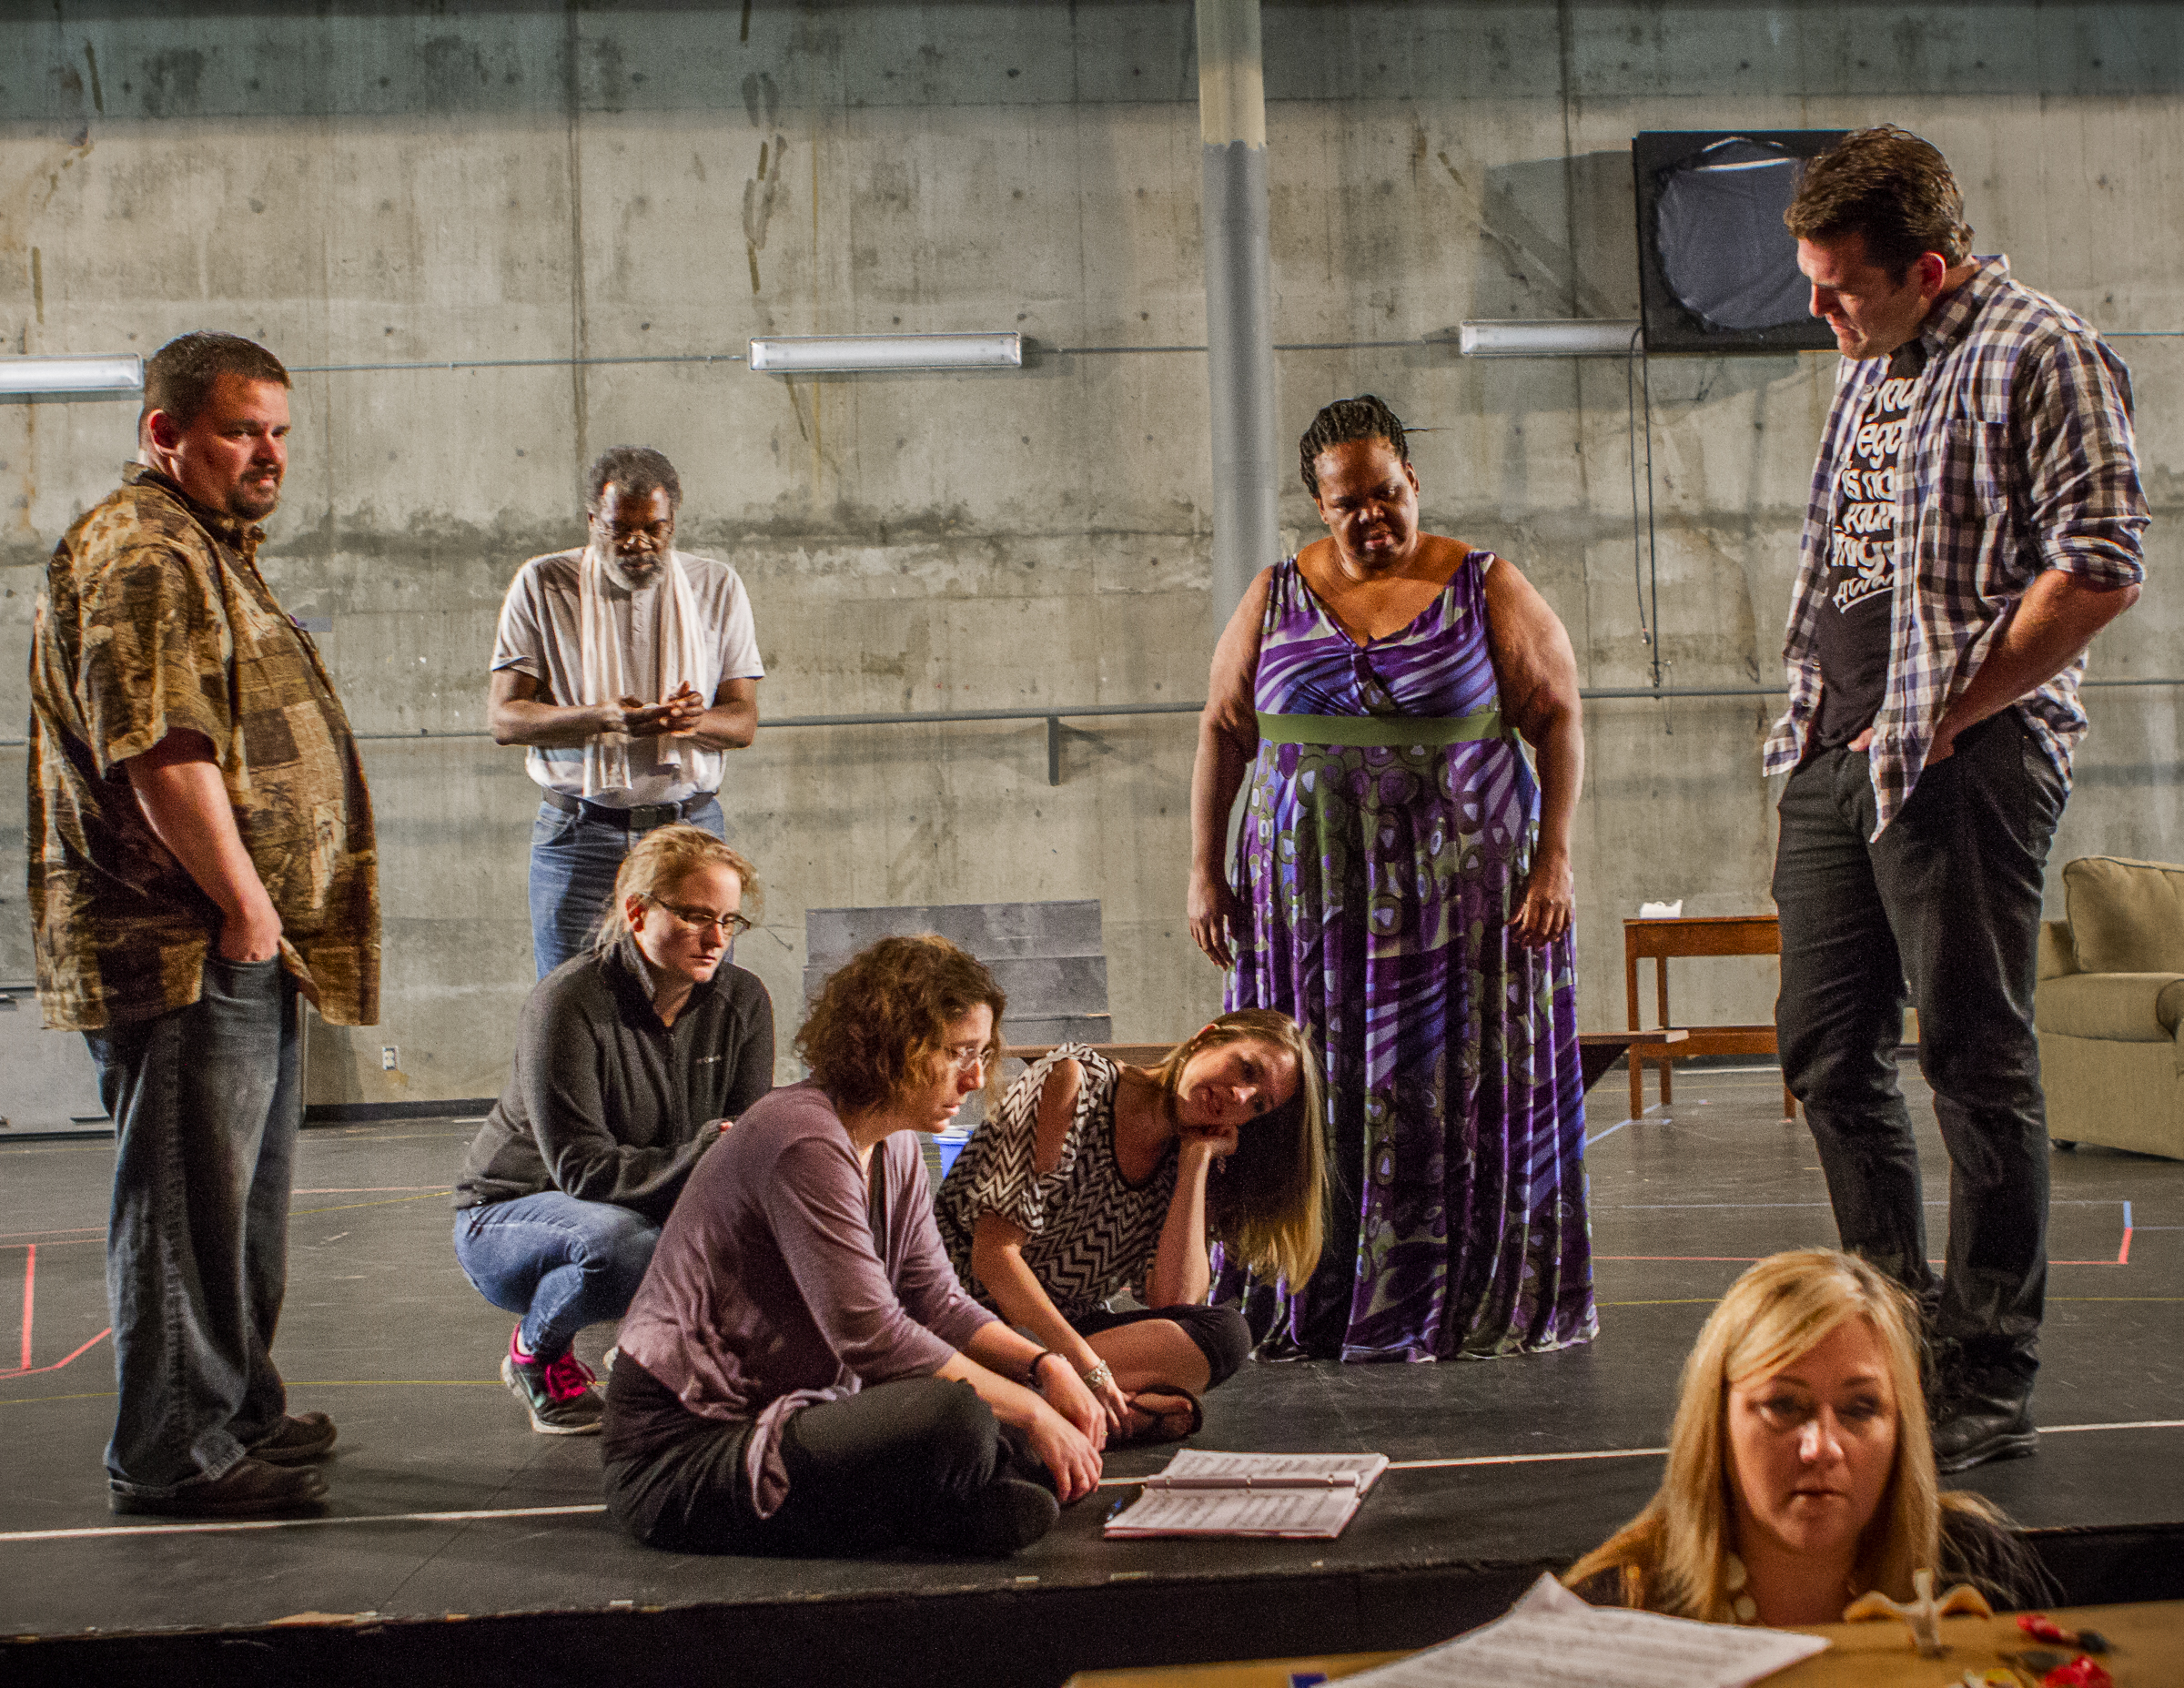 Left to right: Timothy Galloway (Male Angel), Andre Flynn (Paul), Rachael Marsh (Female Angel), Kristine McIntyre (Director), Lindsey Cafferky (Mara), Gwendolyn Brown (The Black Madonna), Janet Coleman (Piano), Michael Mayes (Adam); photo: Owen Carey/Anima Mundi Productions